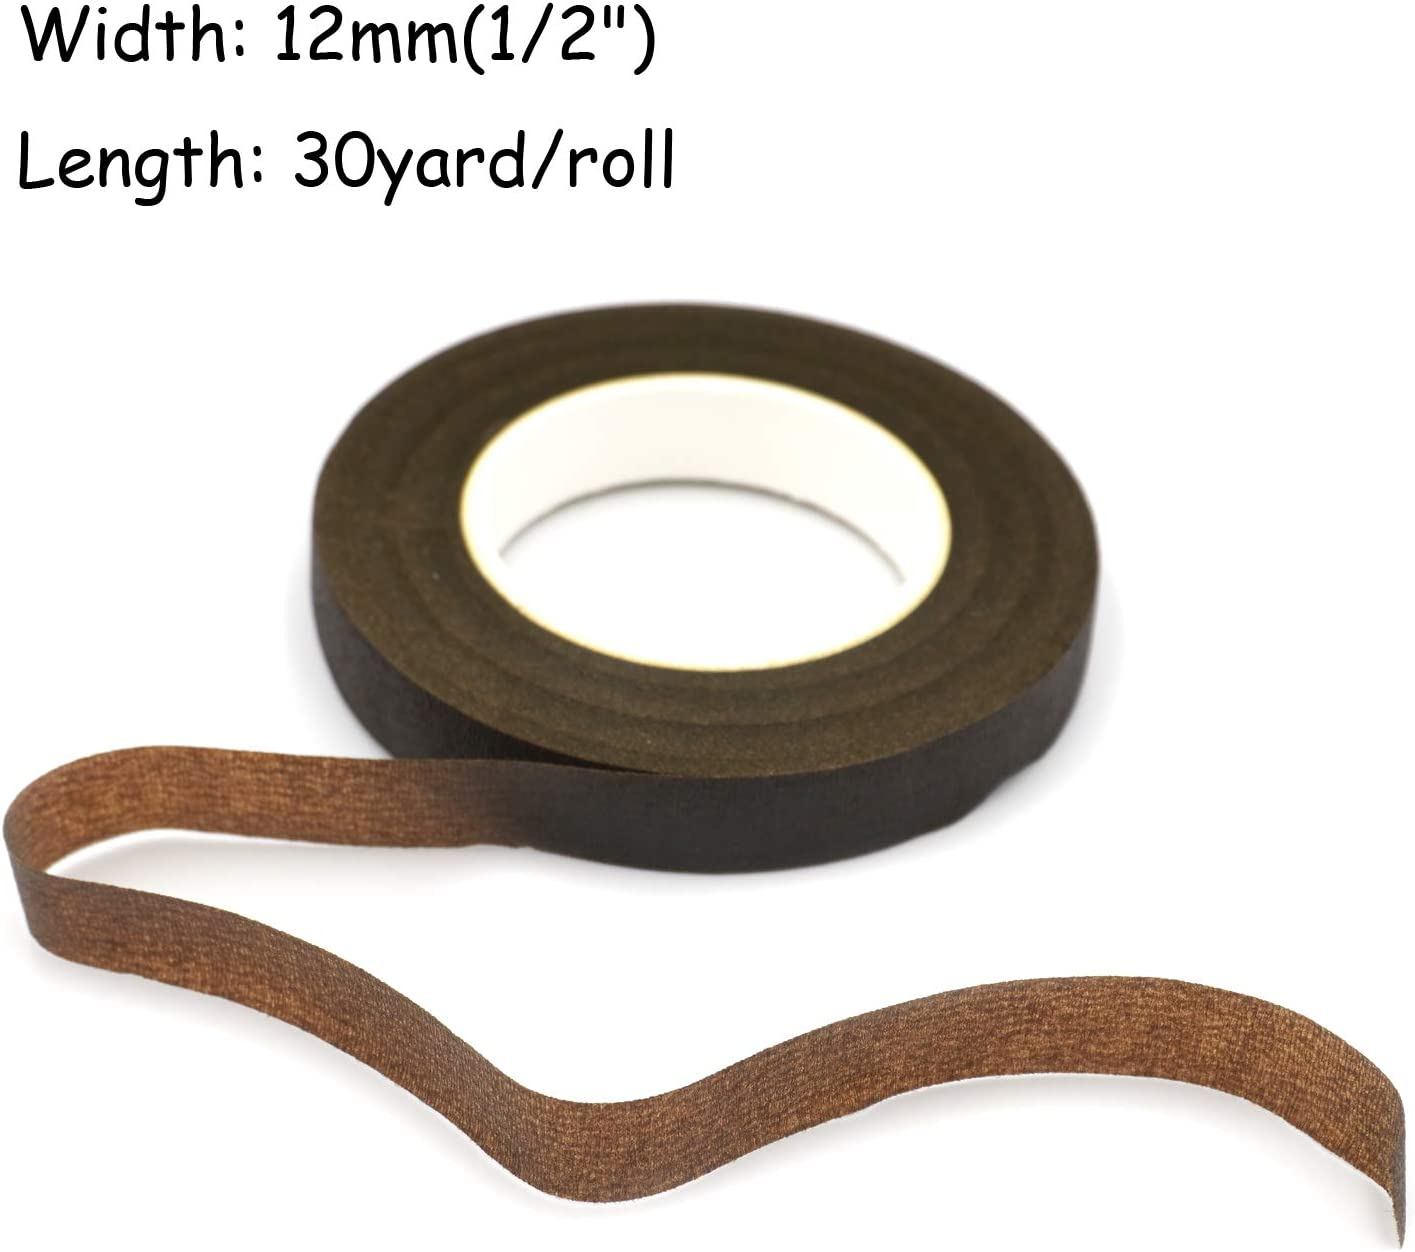 1//2 Wide 30Yard//Roll 4 Rolls of Floral Tapes for Bouquet Stem Wrapping and Florist Craft Projects Black